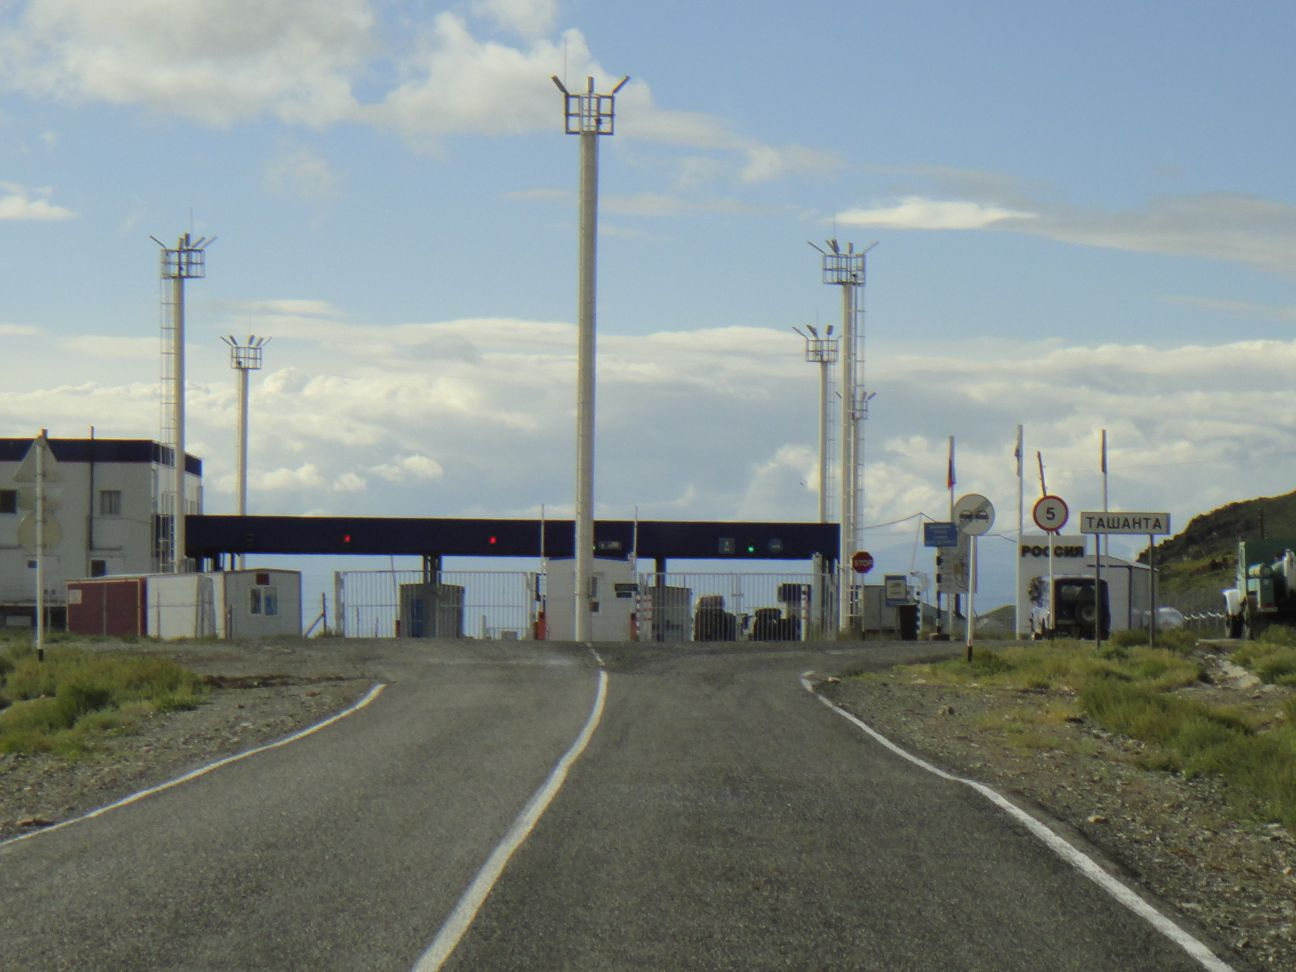 Russian border post, you can just see the green disinfectant truck on the far right of the photo